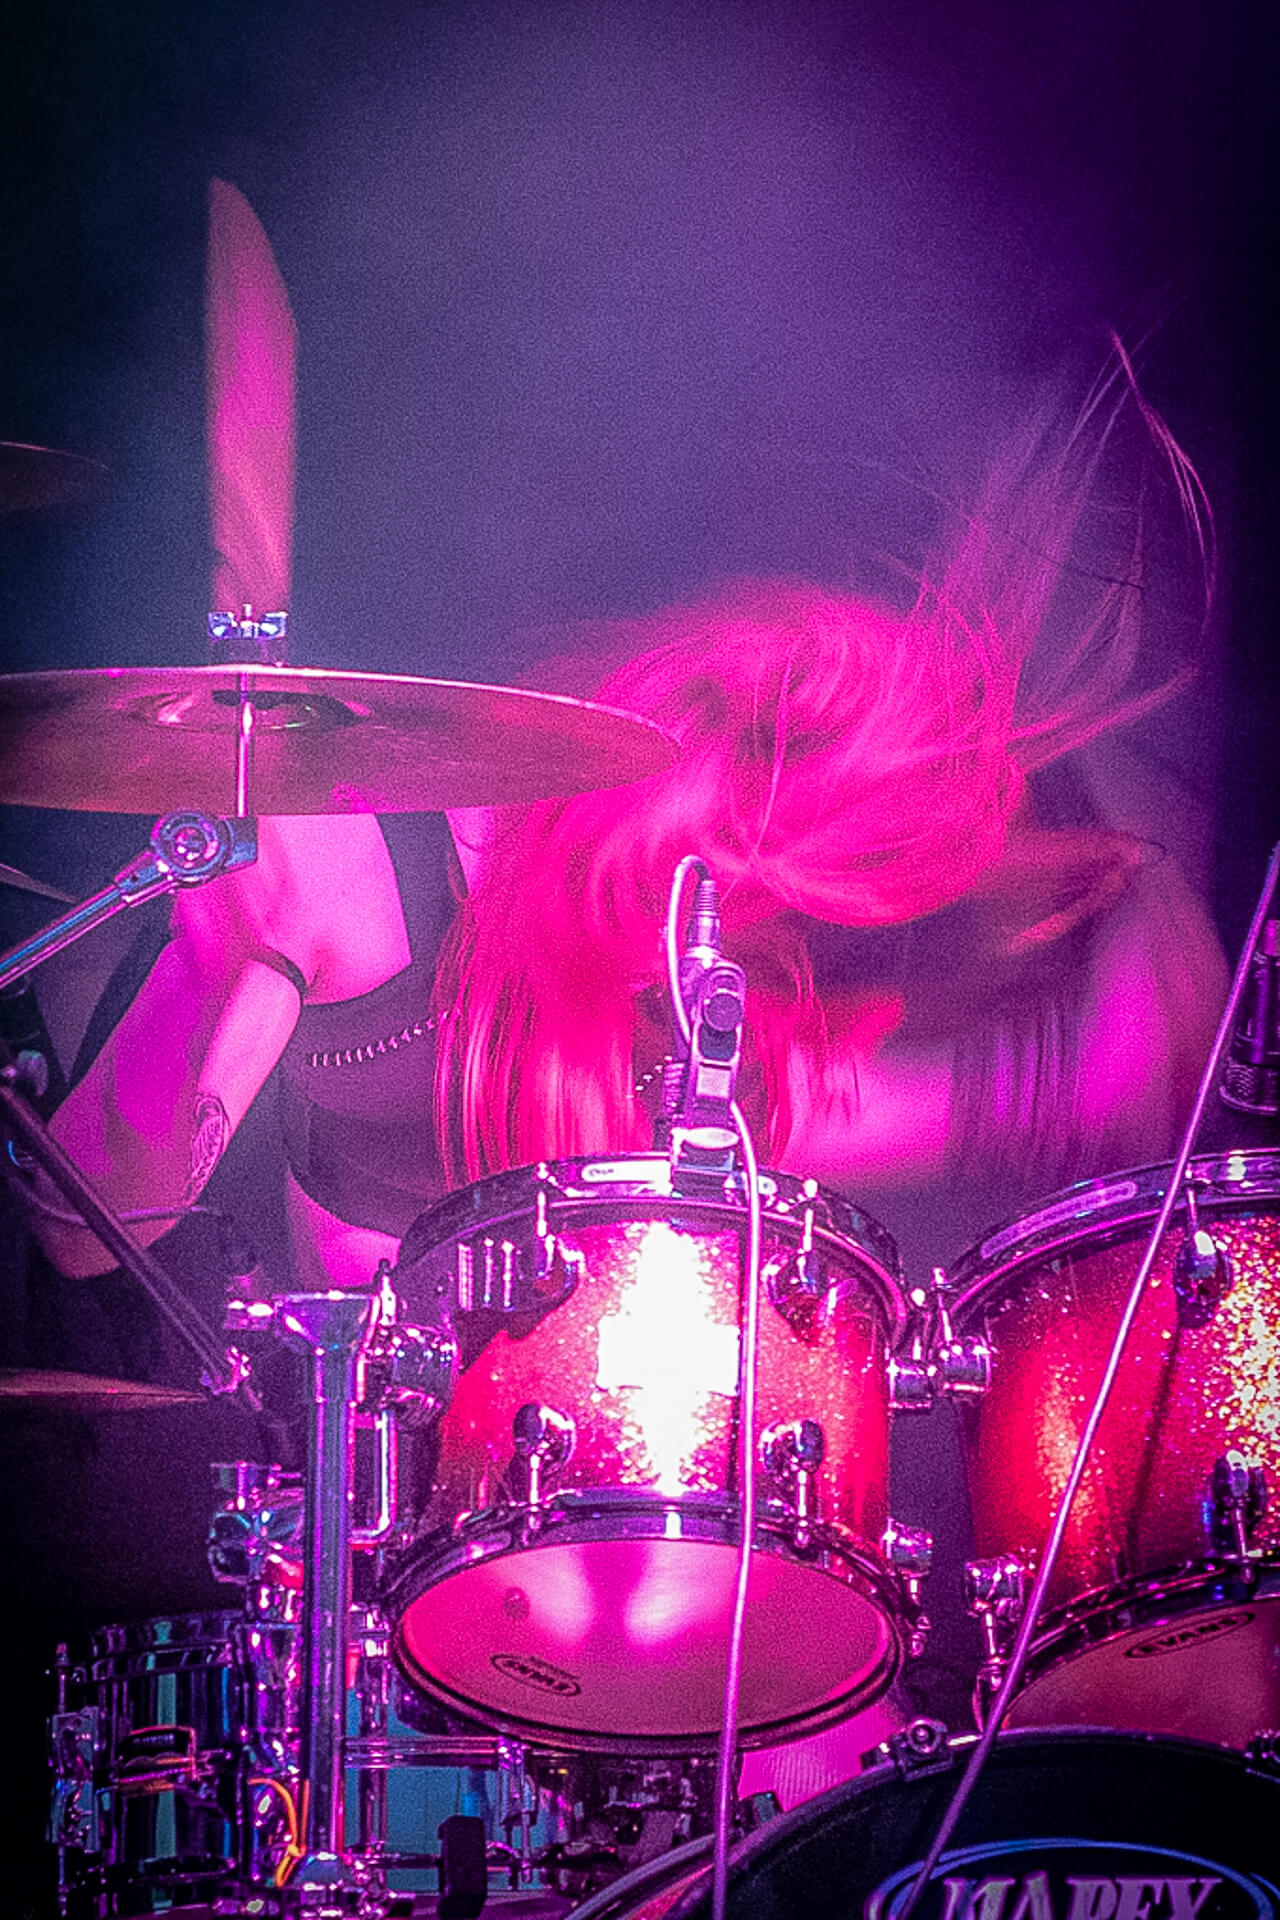 Alice, a female drummer, is seen here behind her drum kit with a now defunct band Aramantus at Mappfest, Malvern. In this deliberately blurred image Alice, with her shock of pink hair, is playing with full on passion.